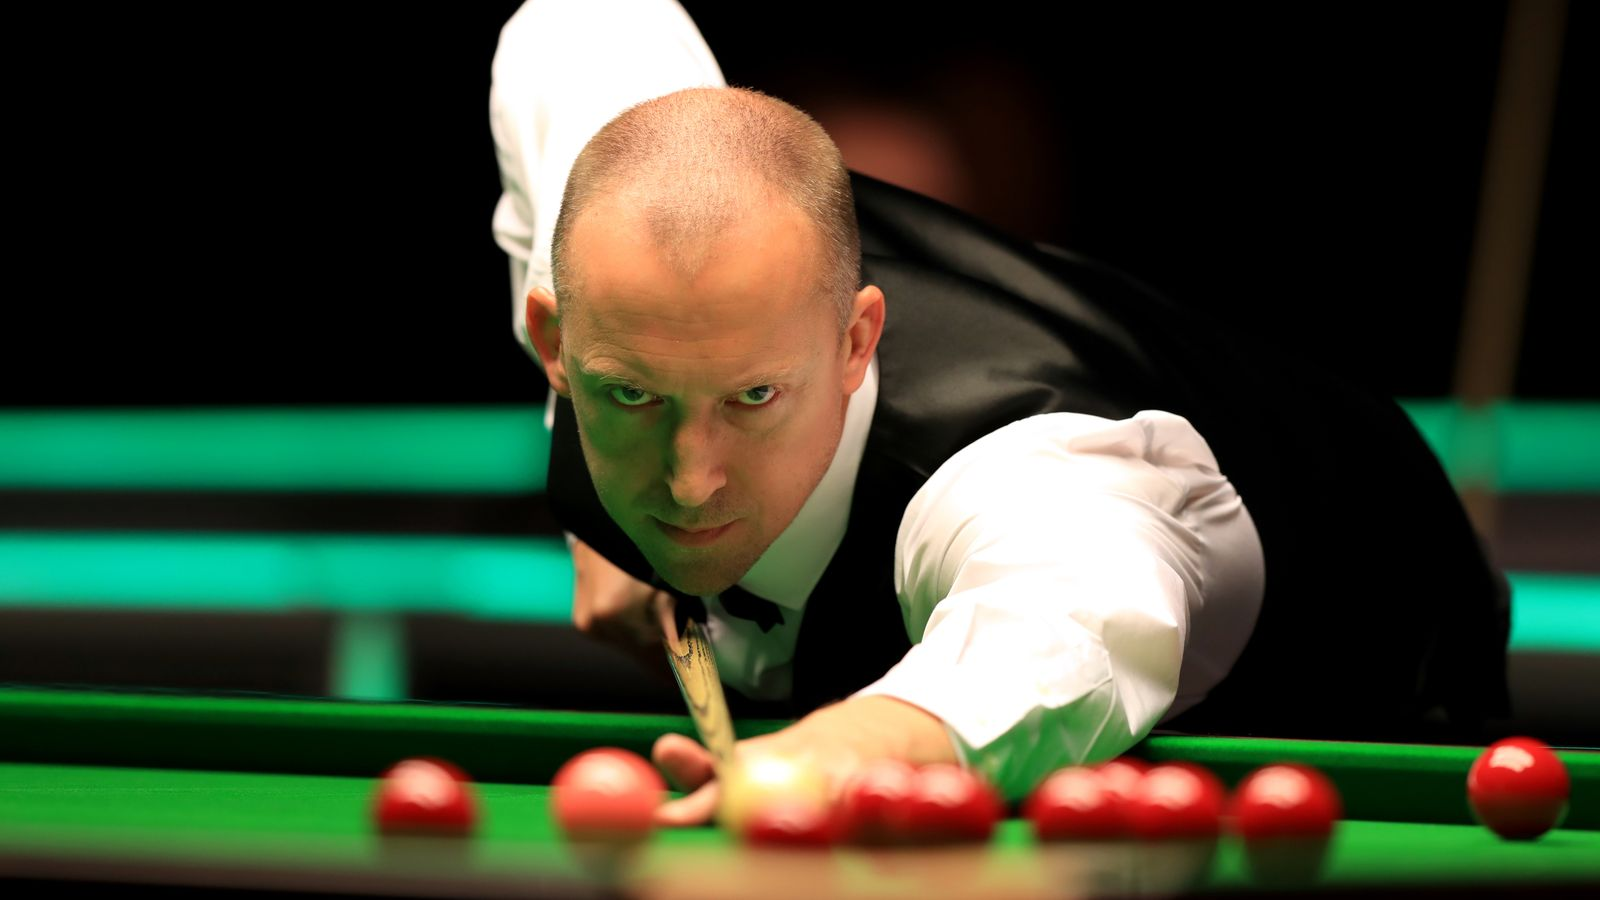 World Seniors Snooker Championship: Jimmy White dethroned by David Lilley at Crucible